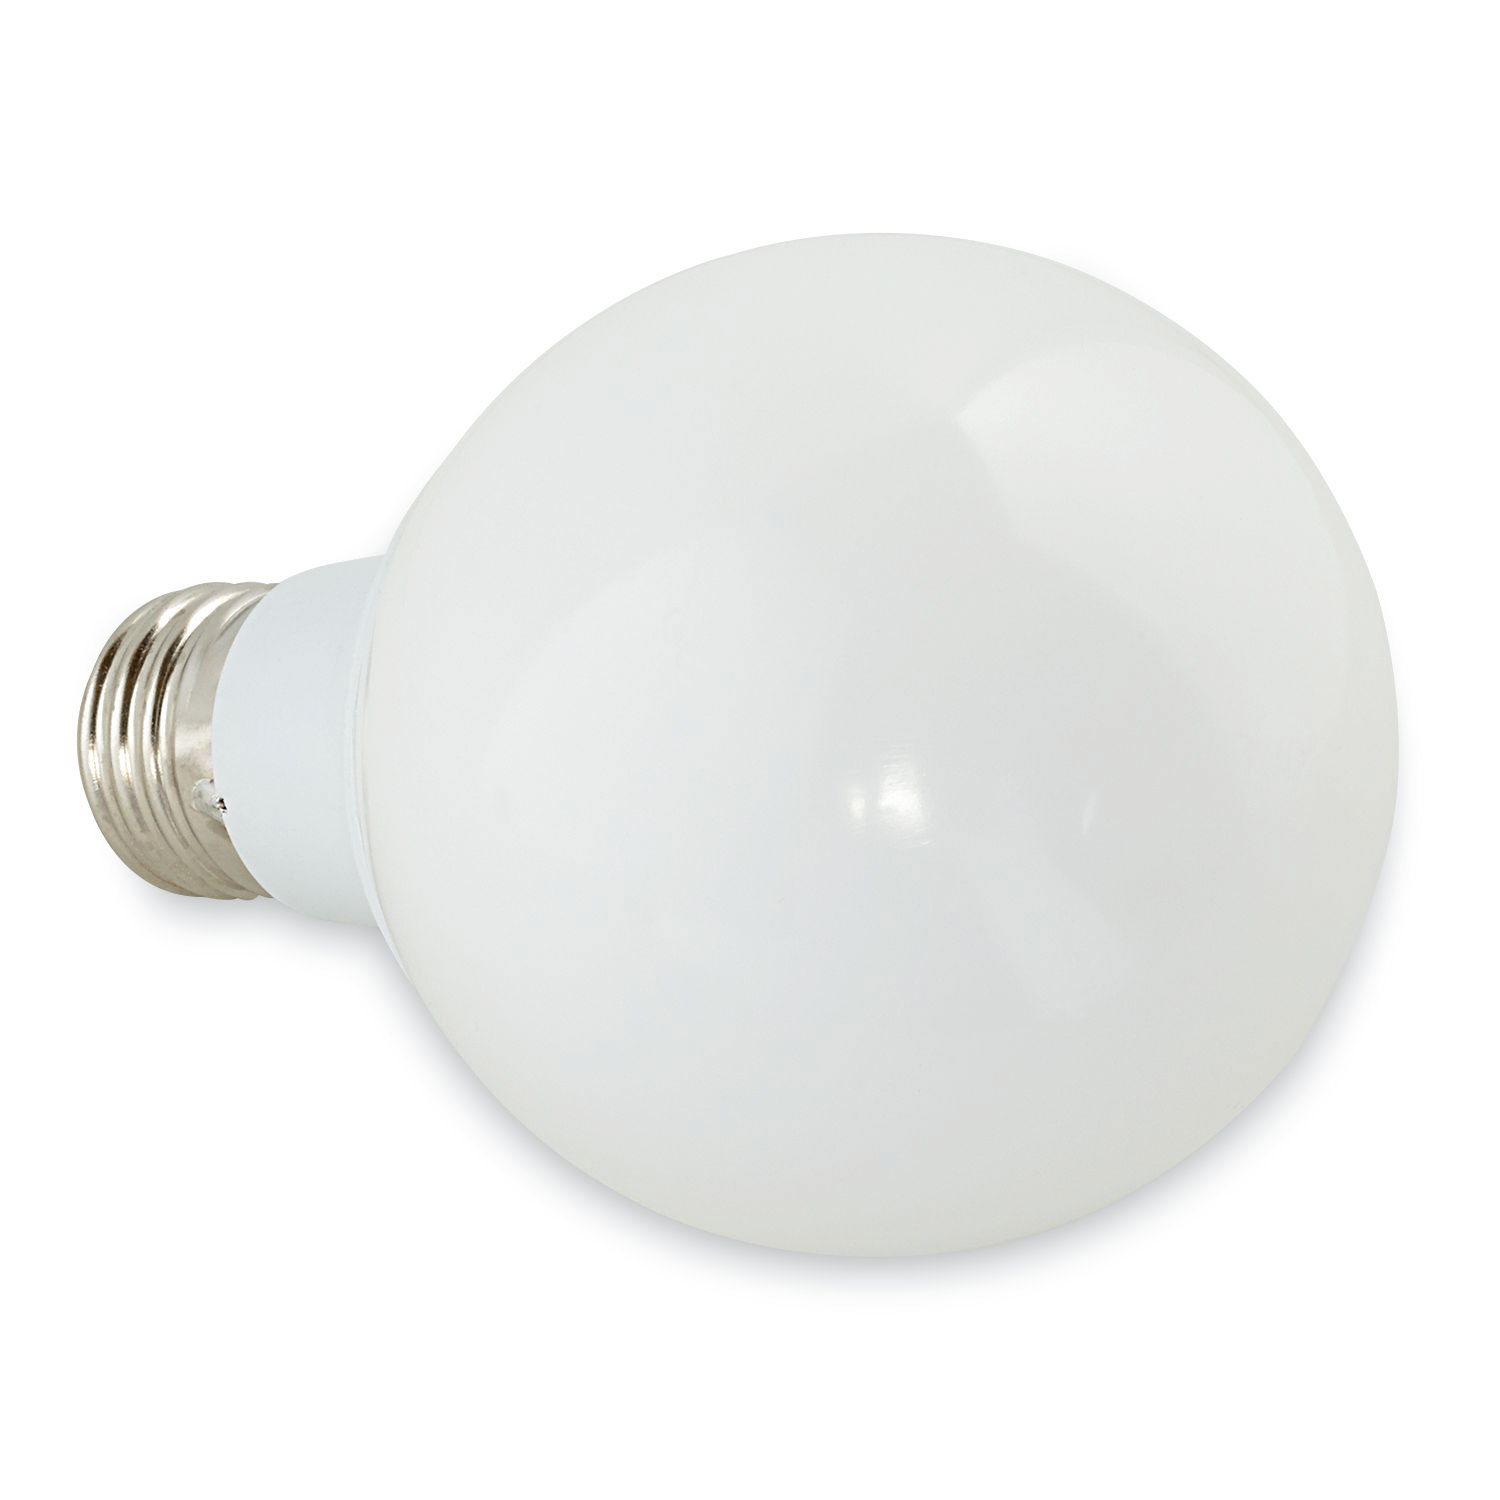 Verbatim Globe, LED Bulb, 98776Replaces 60W, 3000K